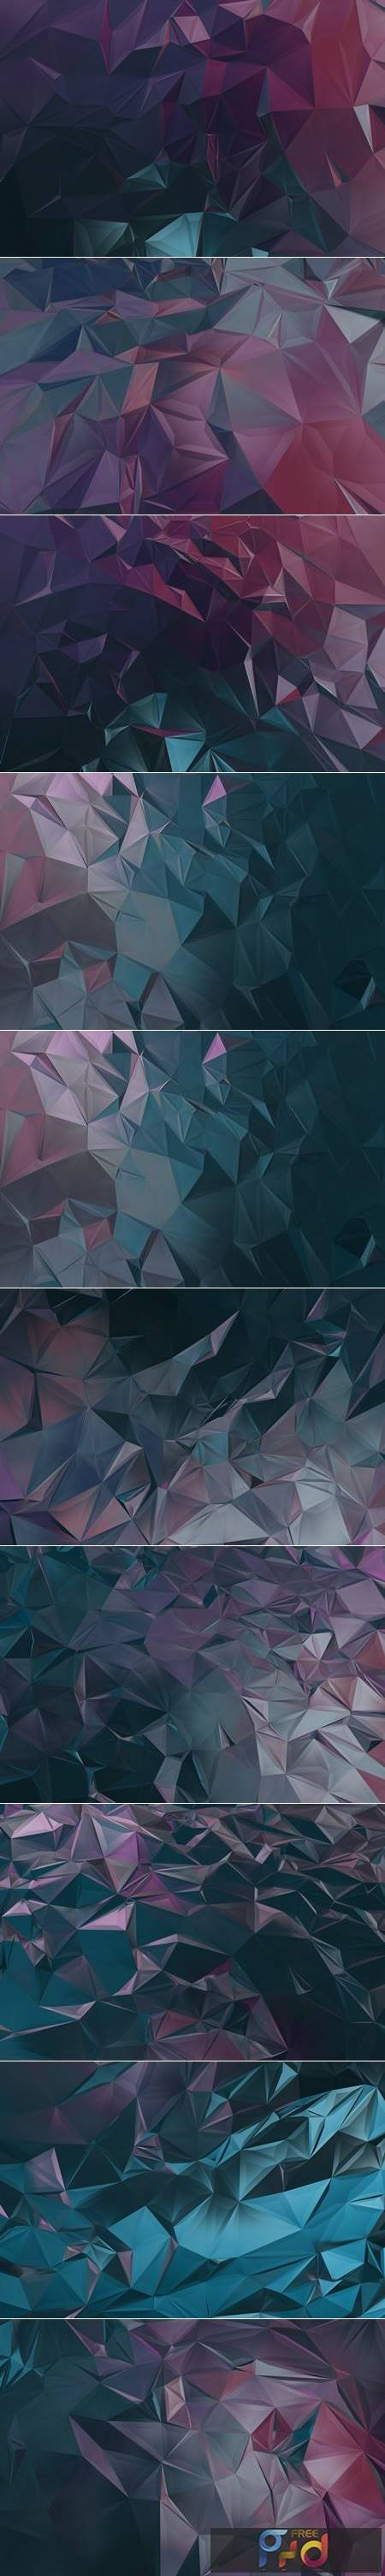 Abstract Polygon Backgrounds B7V2BB3 1